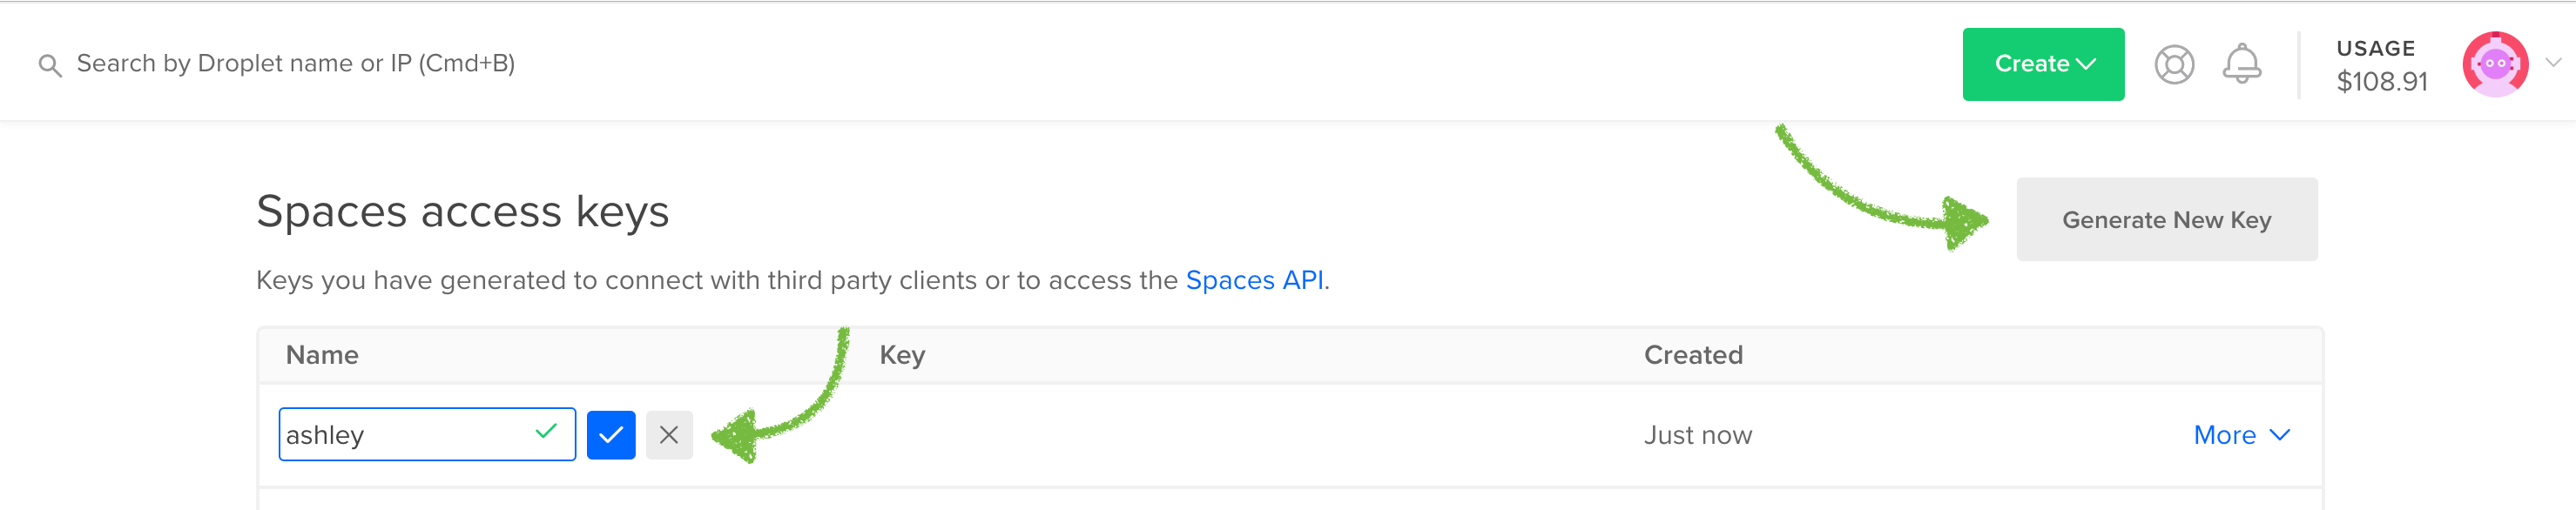 DigitalOcean Spaces Access Keys